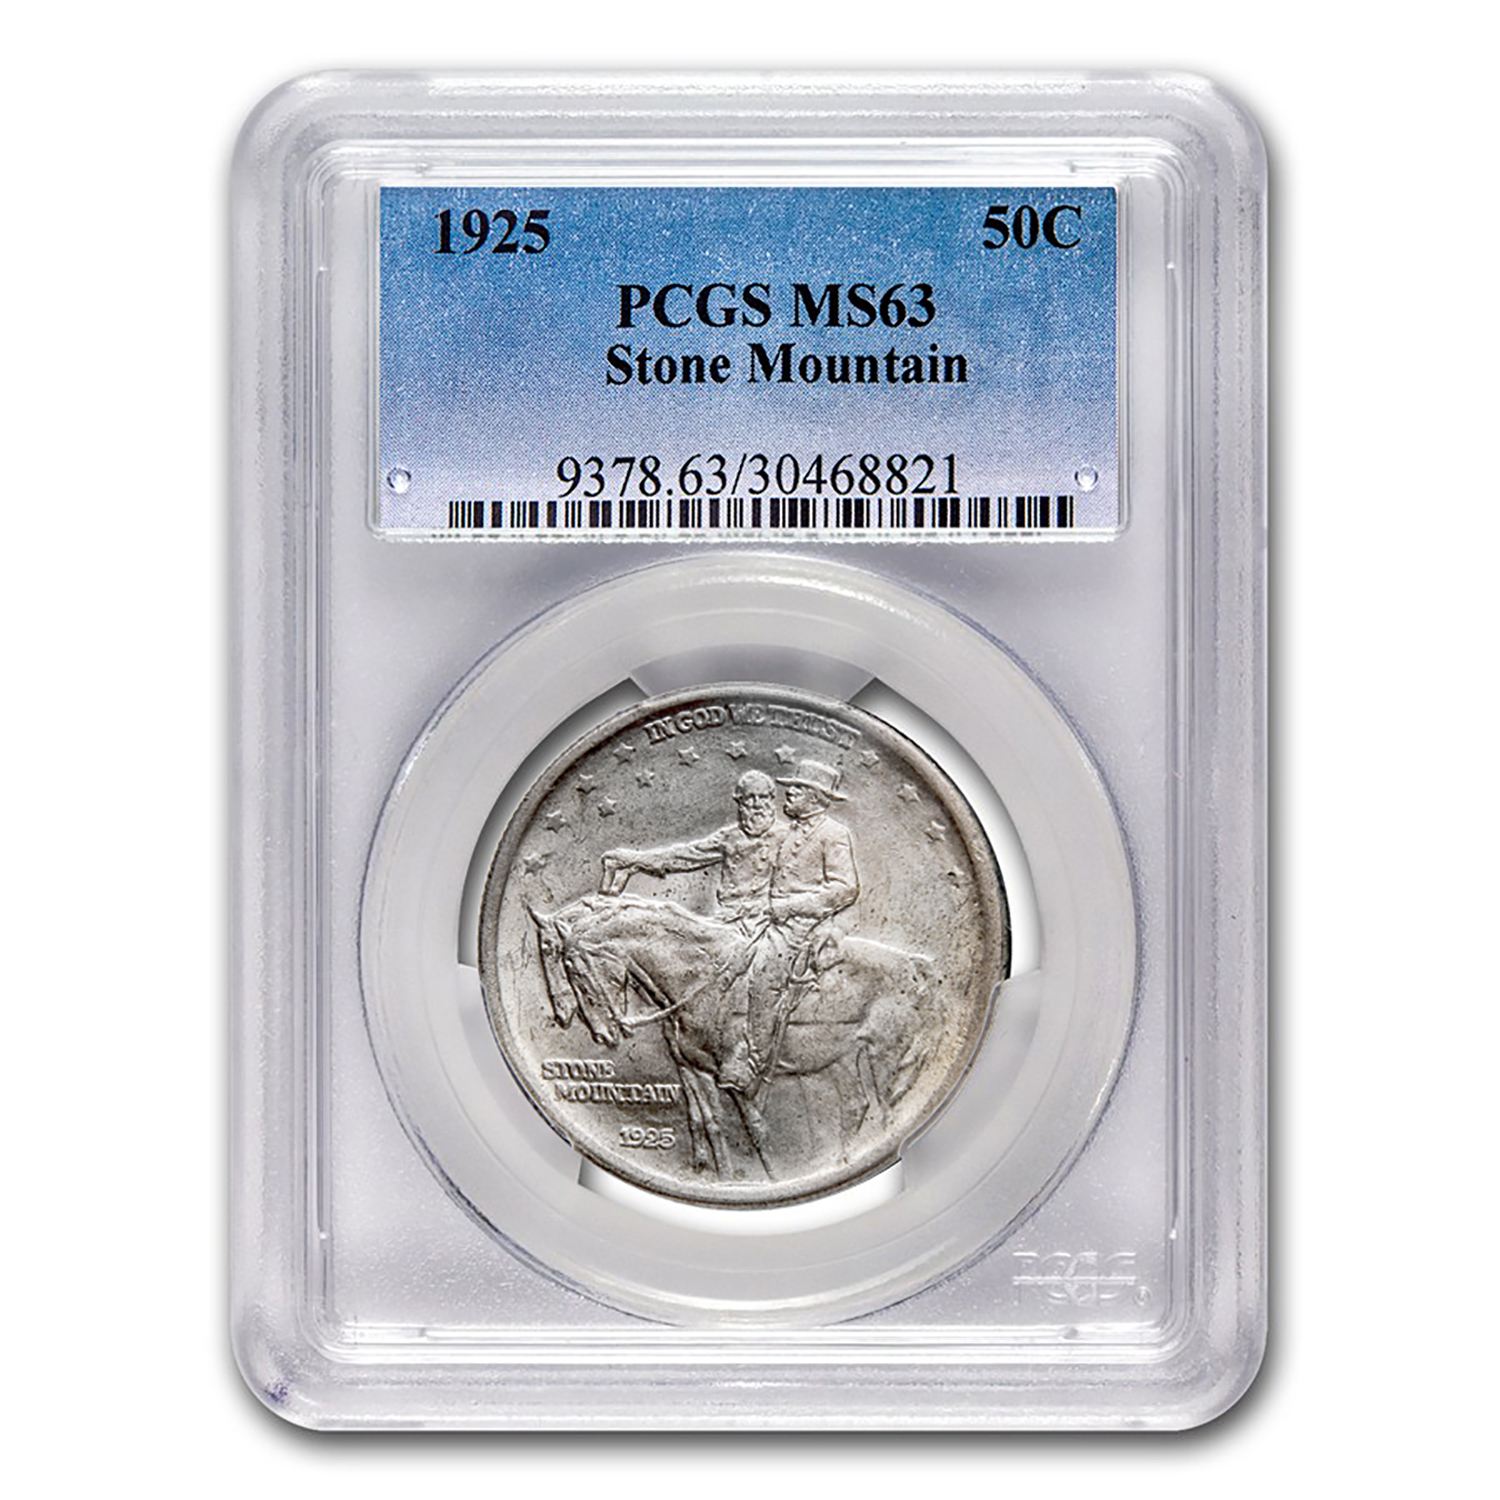 1925 Stone Mountain Memorial Half MS-63 PCGS